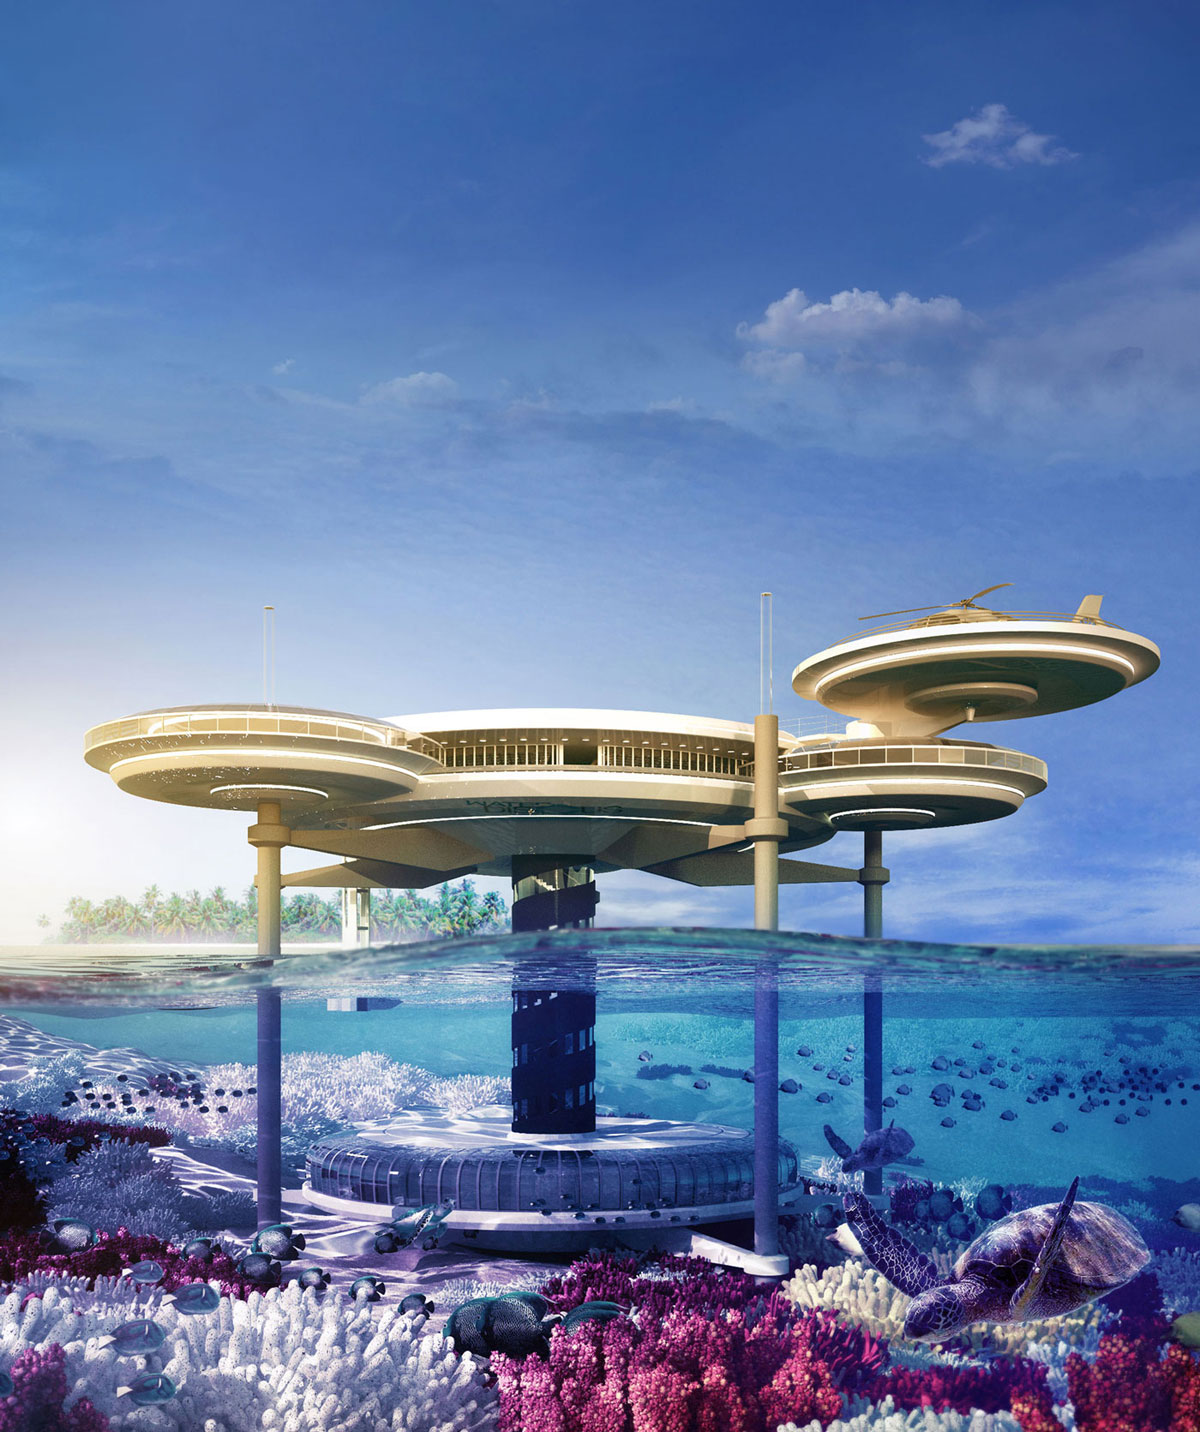 The Water Discus Hotel Emerges from the Depth of Dubai